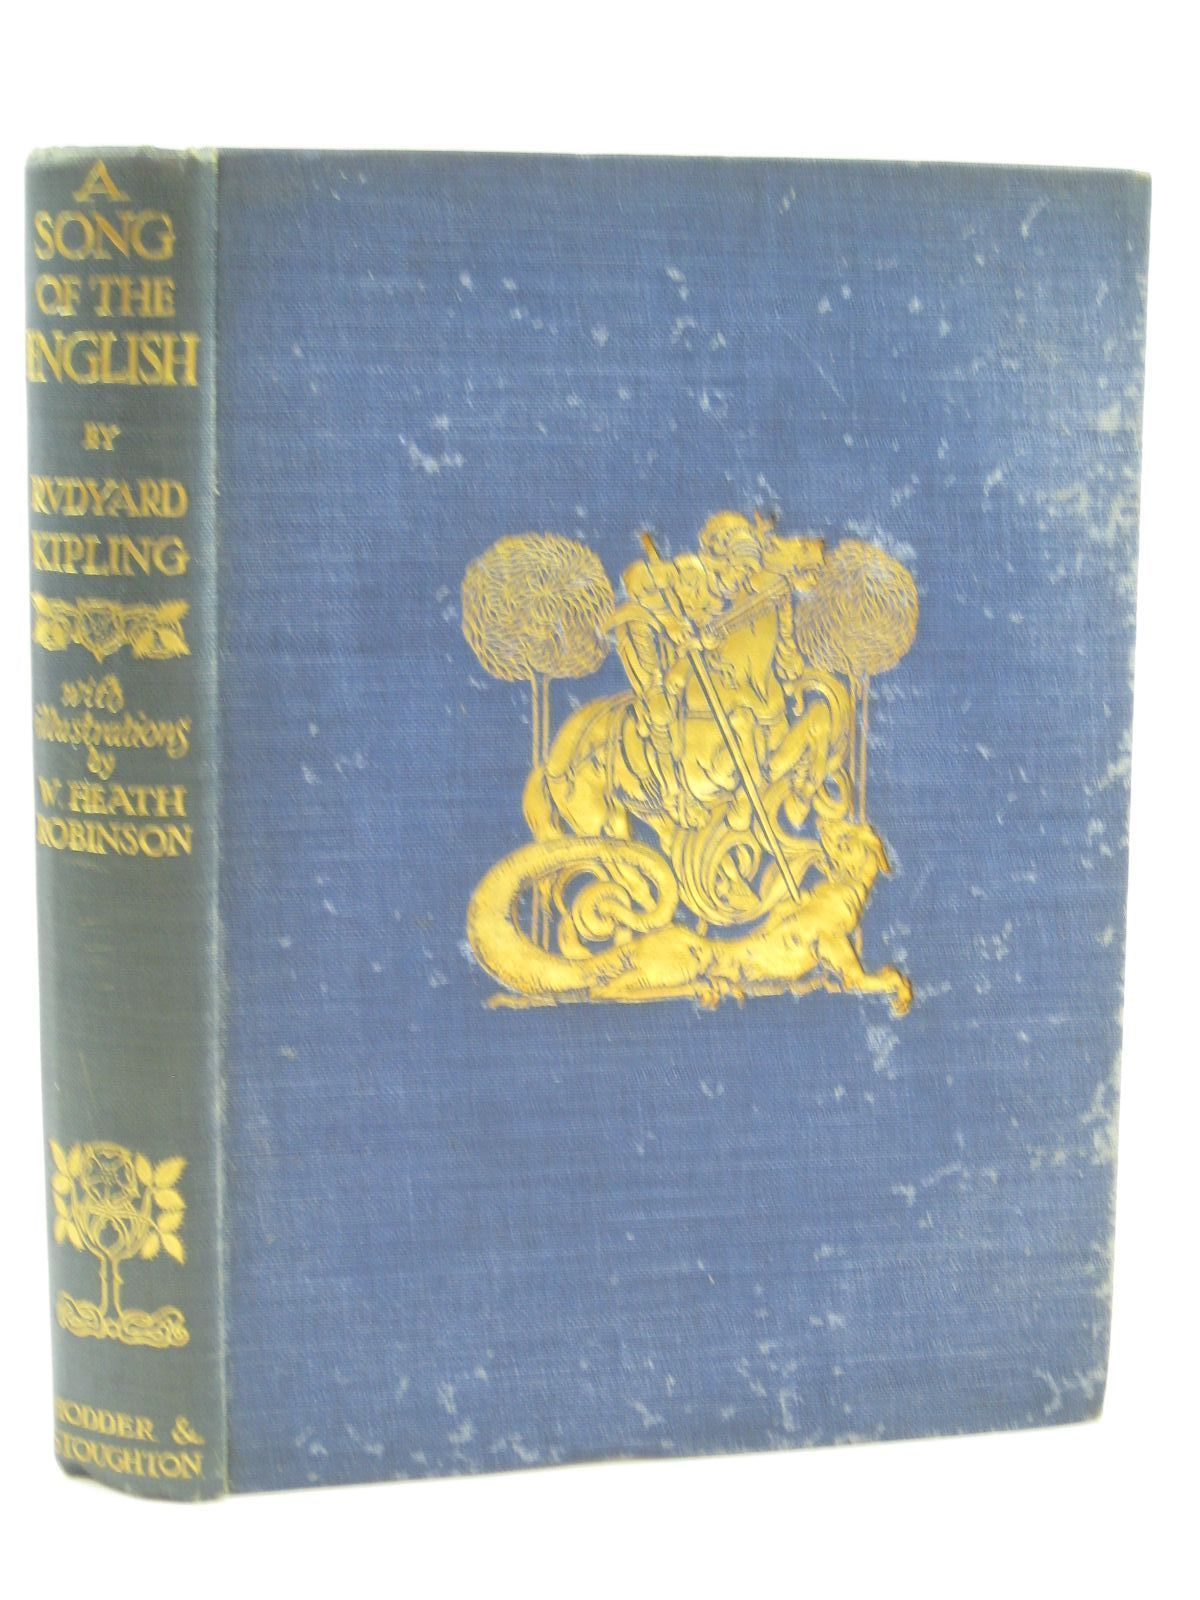 Photo of A SONG OF THE ENGLISH written by Kipling, Rudyard illustrated by Robinson, W. Heath published by Hodder & Stoughton (STOCK CODE: 1506921)  for sale by Stella & Rose's Books